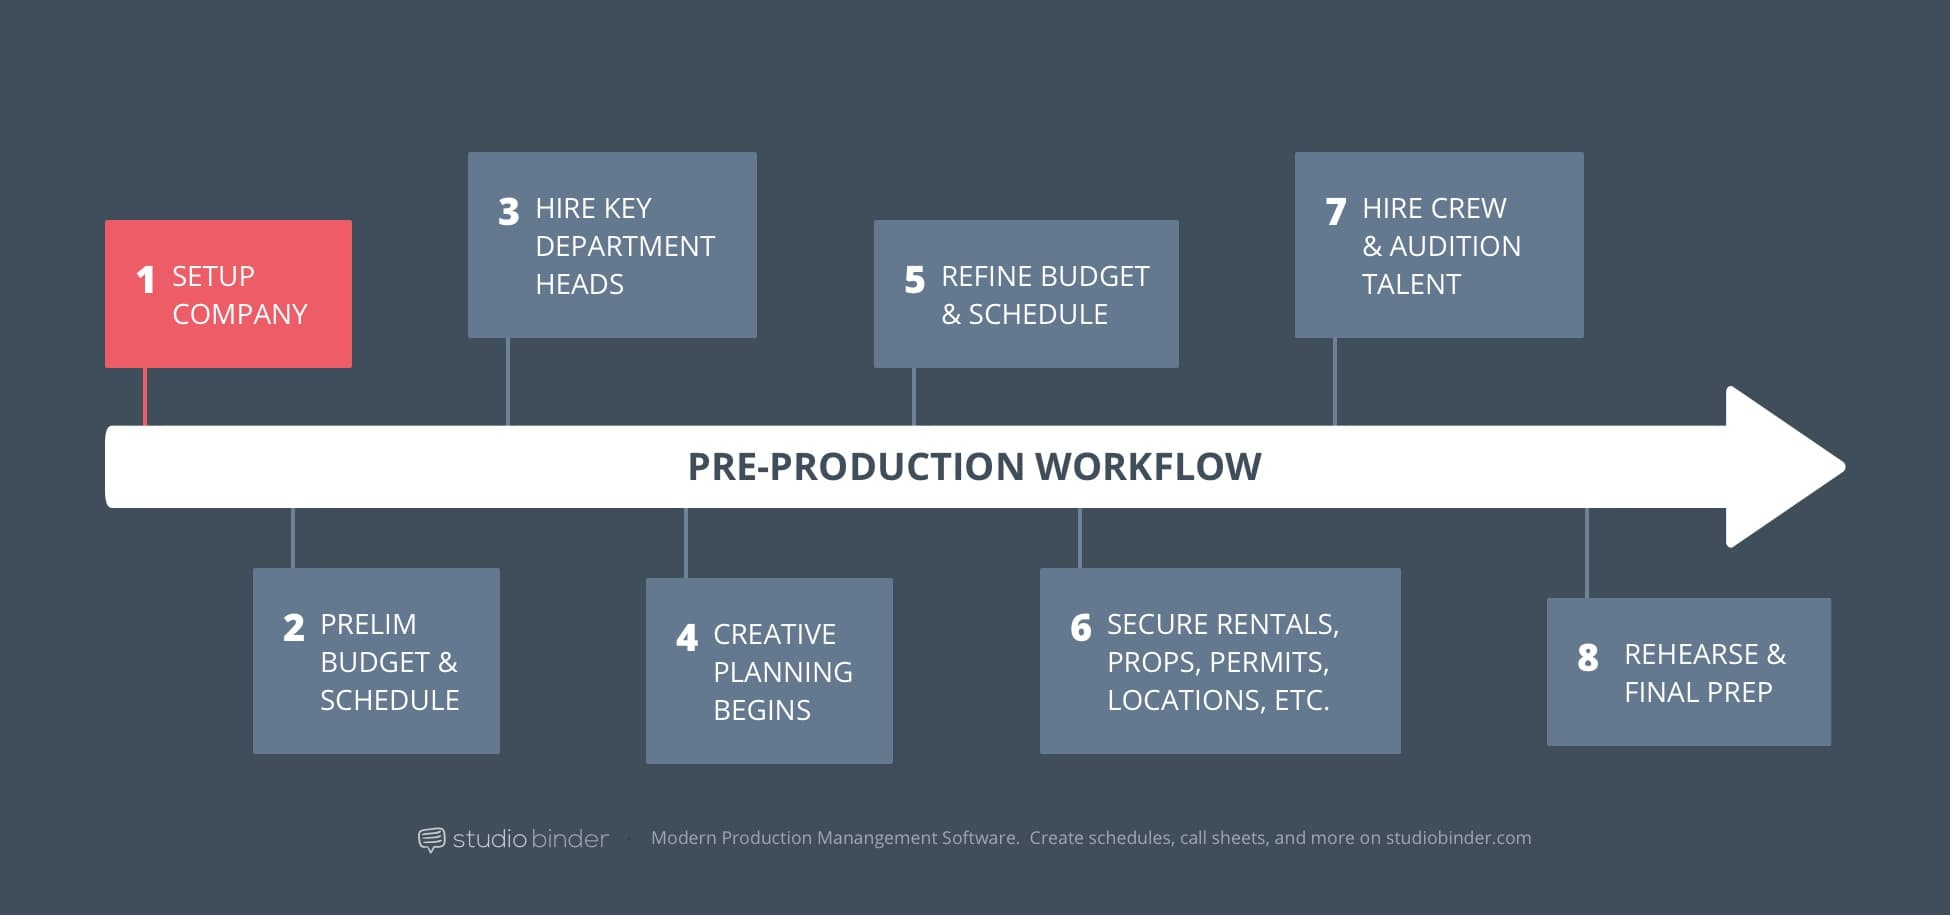 1 – StudioBinder Pre-Production Workflow – Setup Production Company